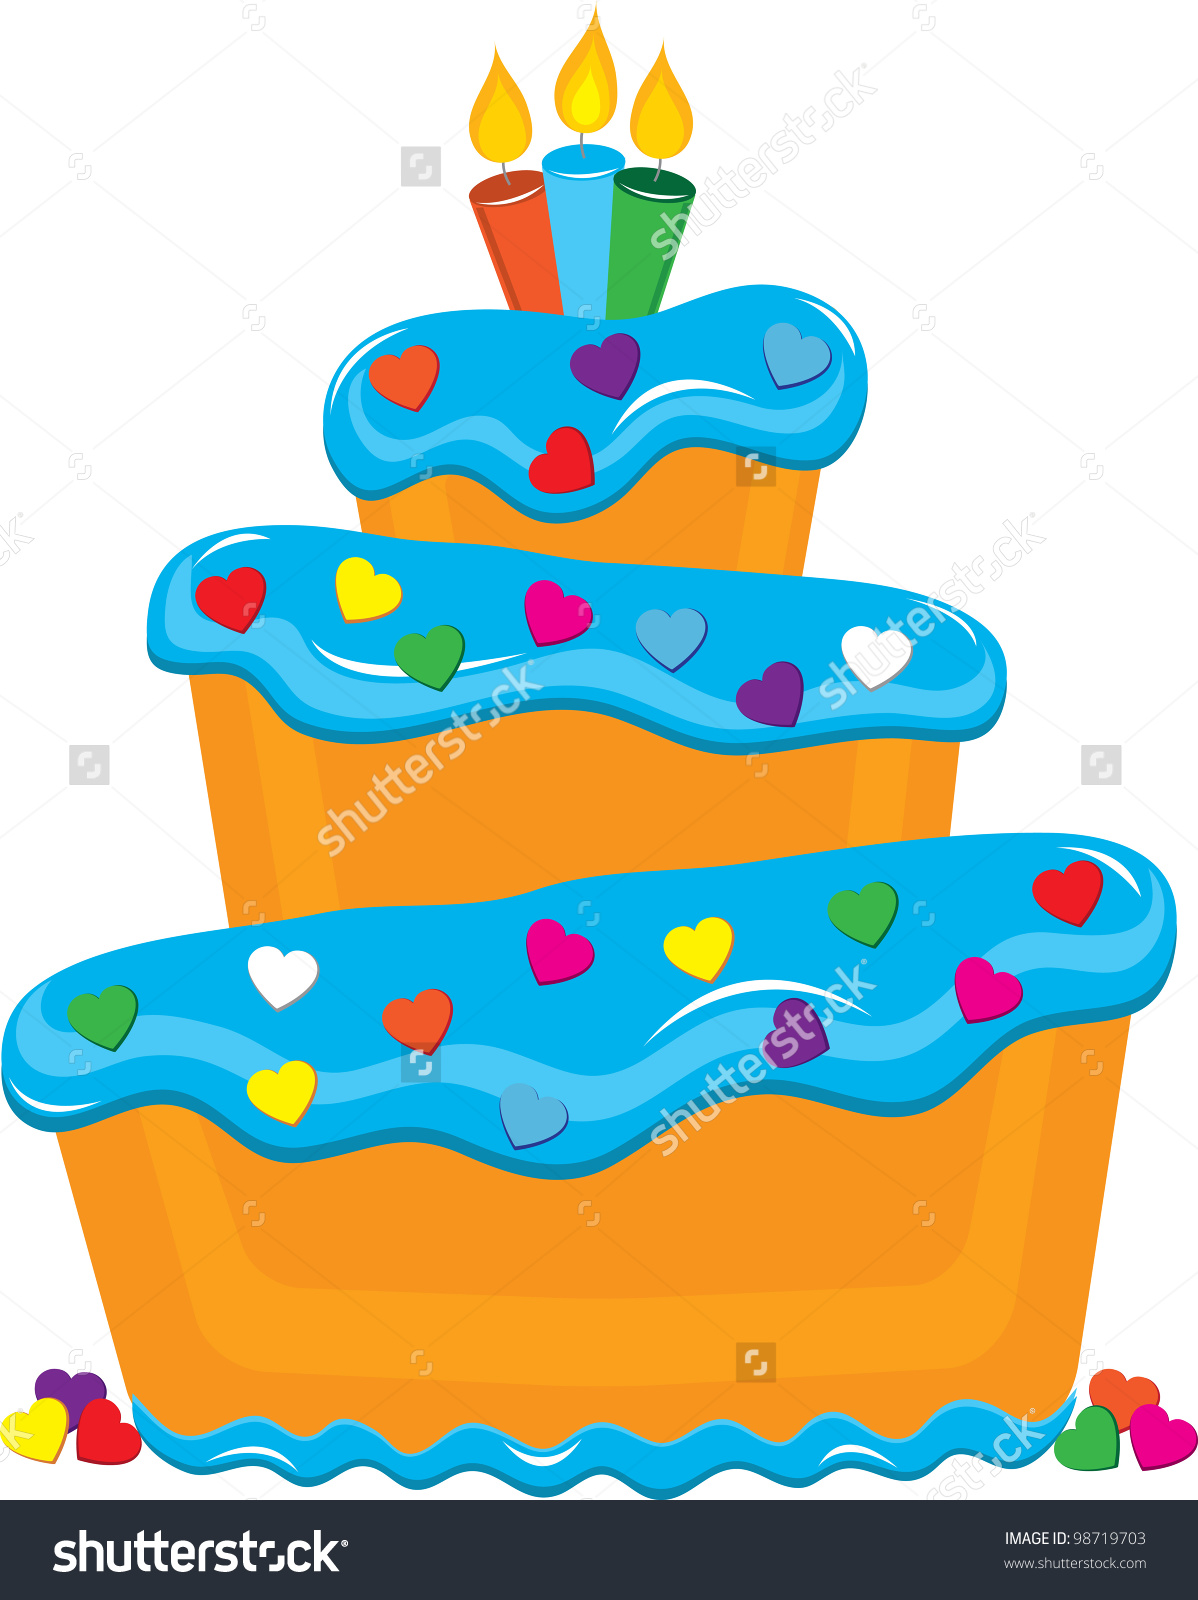 Two Tier Cake Clipart.